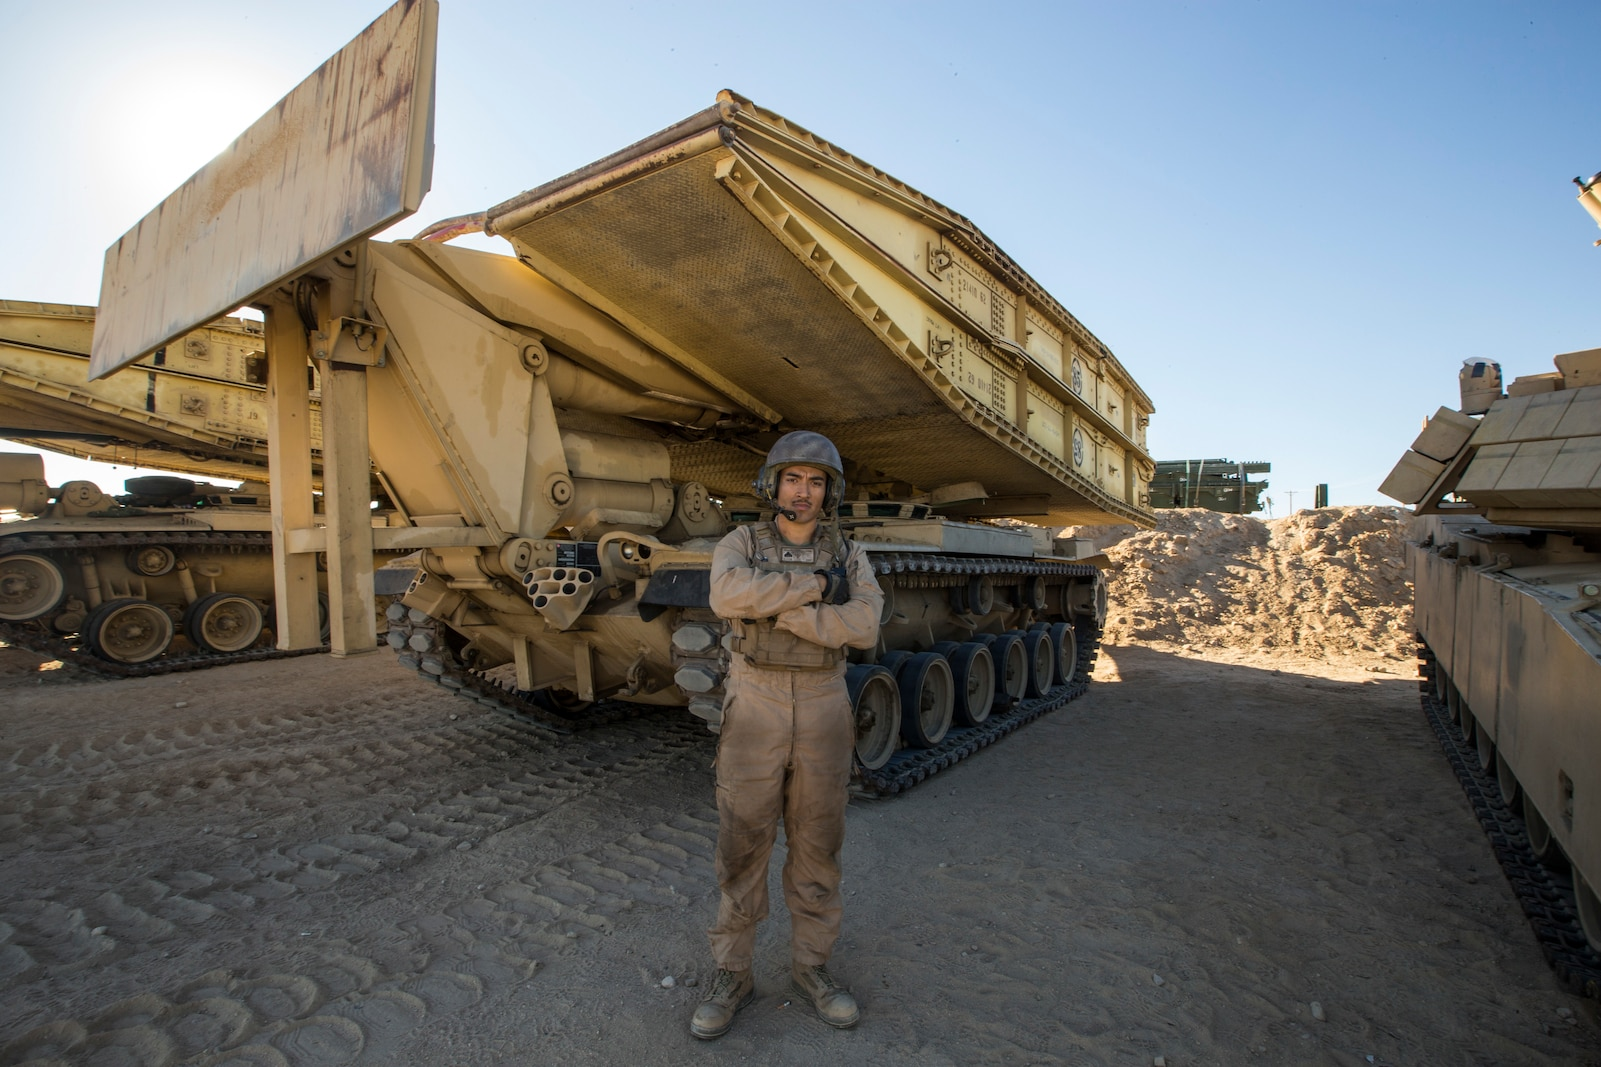 U.S. Marine Corps Cpl. Gerardo, Parra, an Assault Breacher Vehicle Joint Assault Bridge Operator, with 1st Combat Engineer Battalion, 1st Marine Division poses for a photo during exercise Steel Knight (SK) 2019 at Marine Corps Air Ground Combat Center, Twentynine Palms, California, Nov. 28, 2018